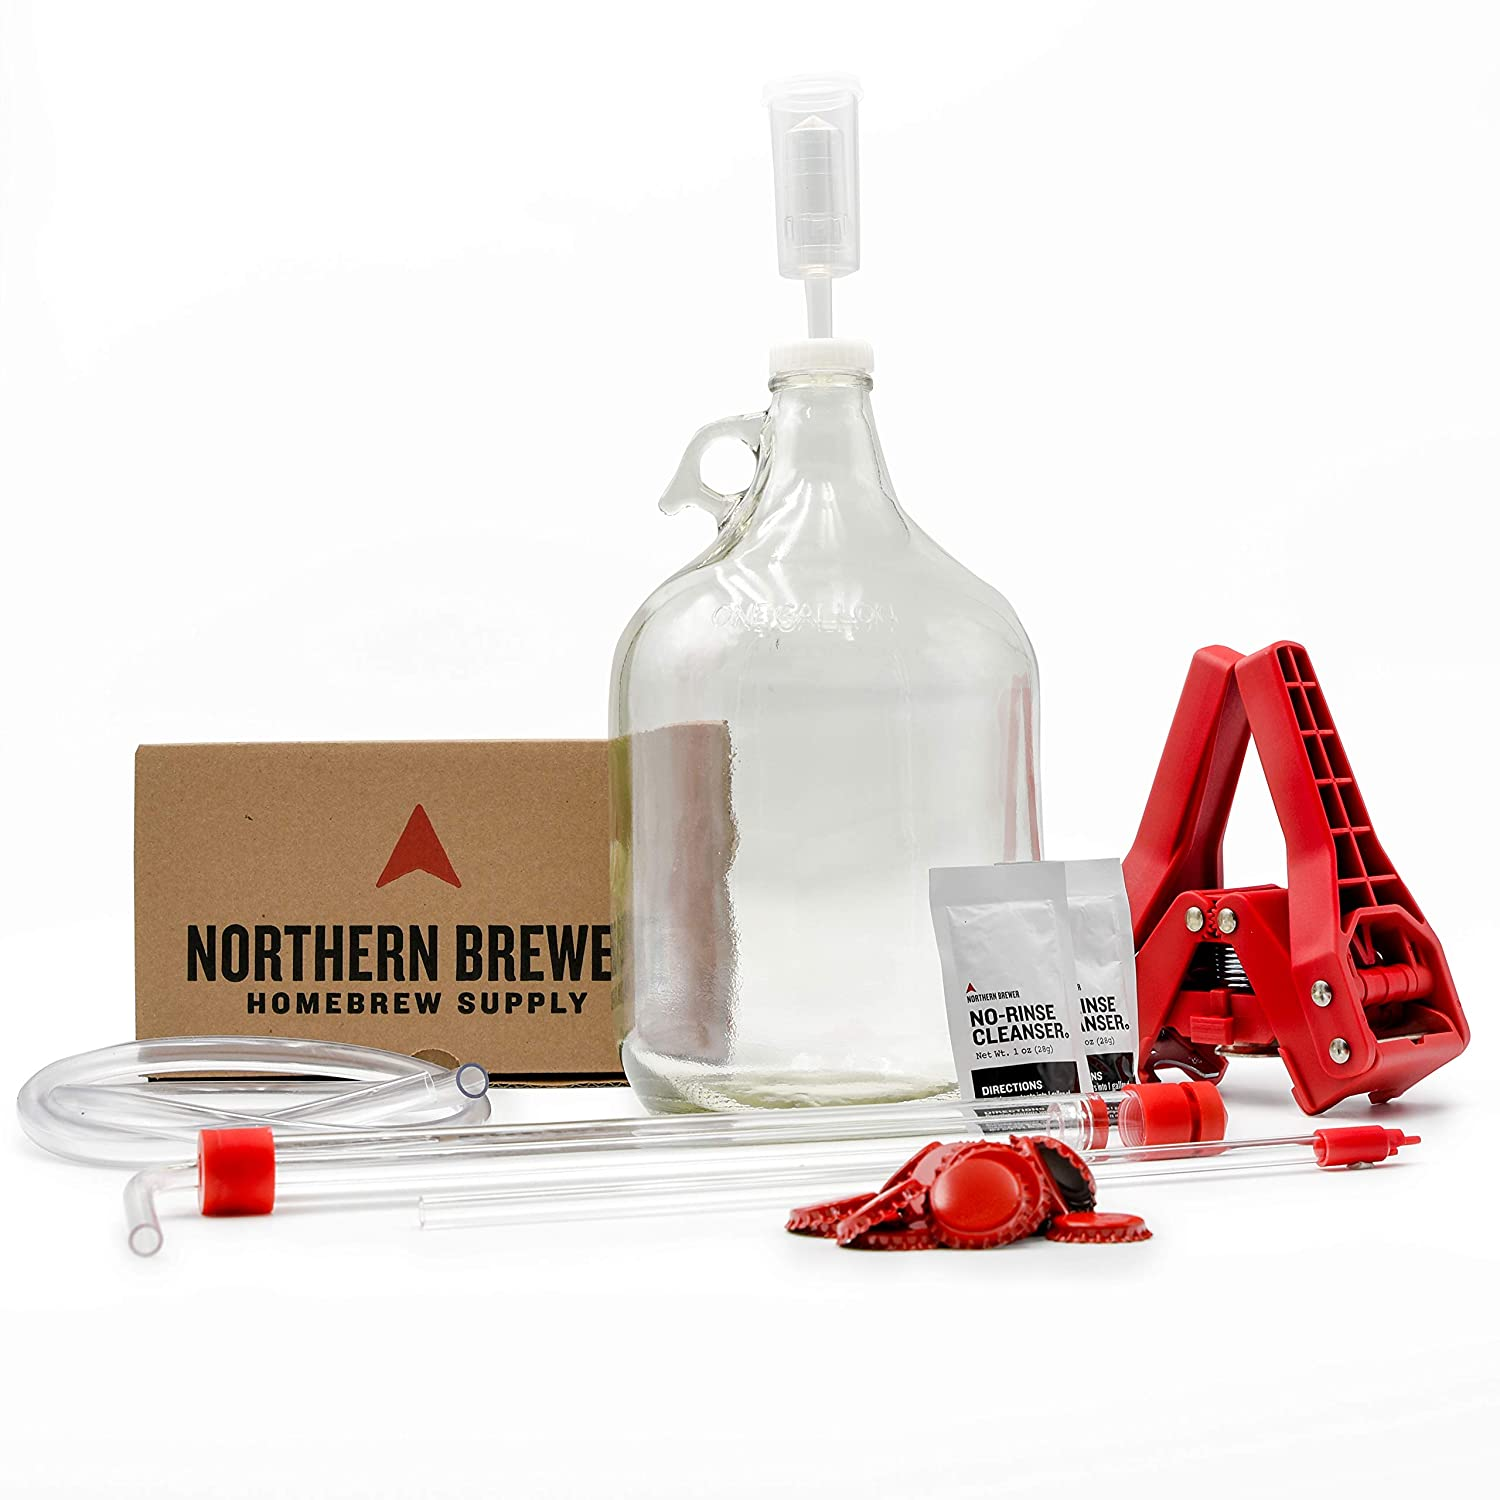 Northern Brewer American Wheat Beer Recipe Kit - Small Batch HomeBrewing Beer Brewing Starter Kit - Fermentation Jug Equipment For Making 1 Gallon Of Homemade Brew